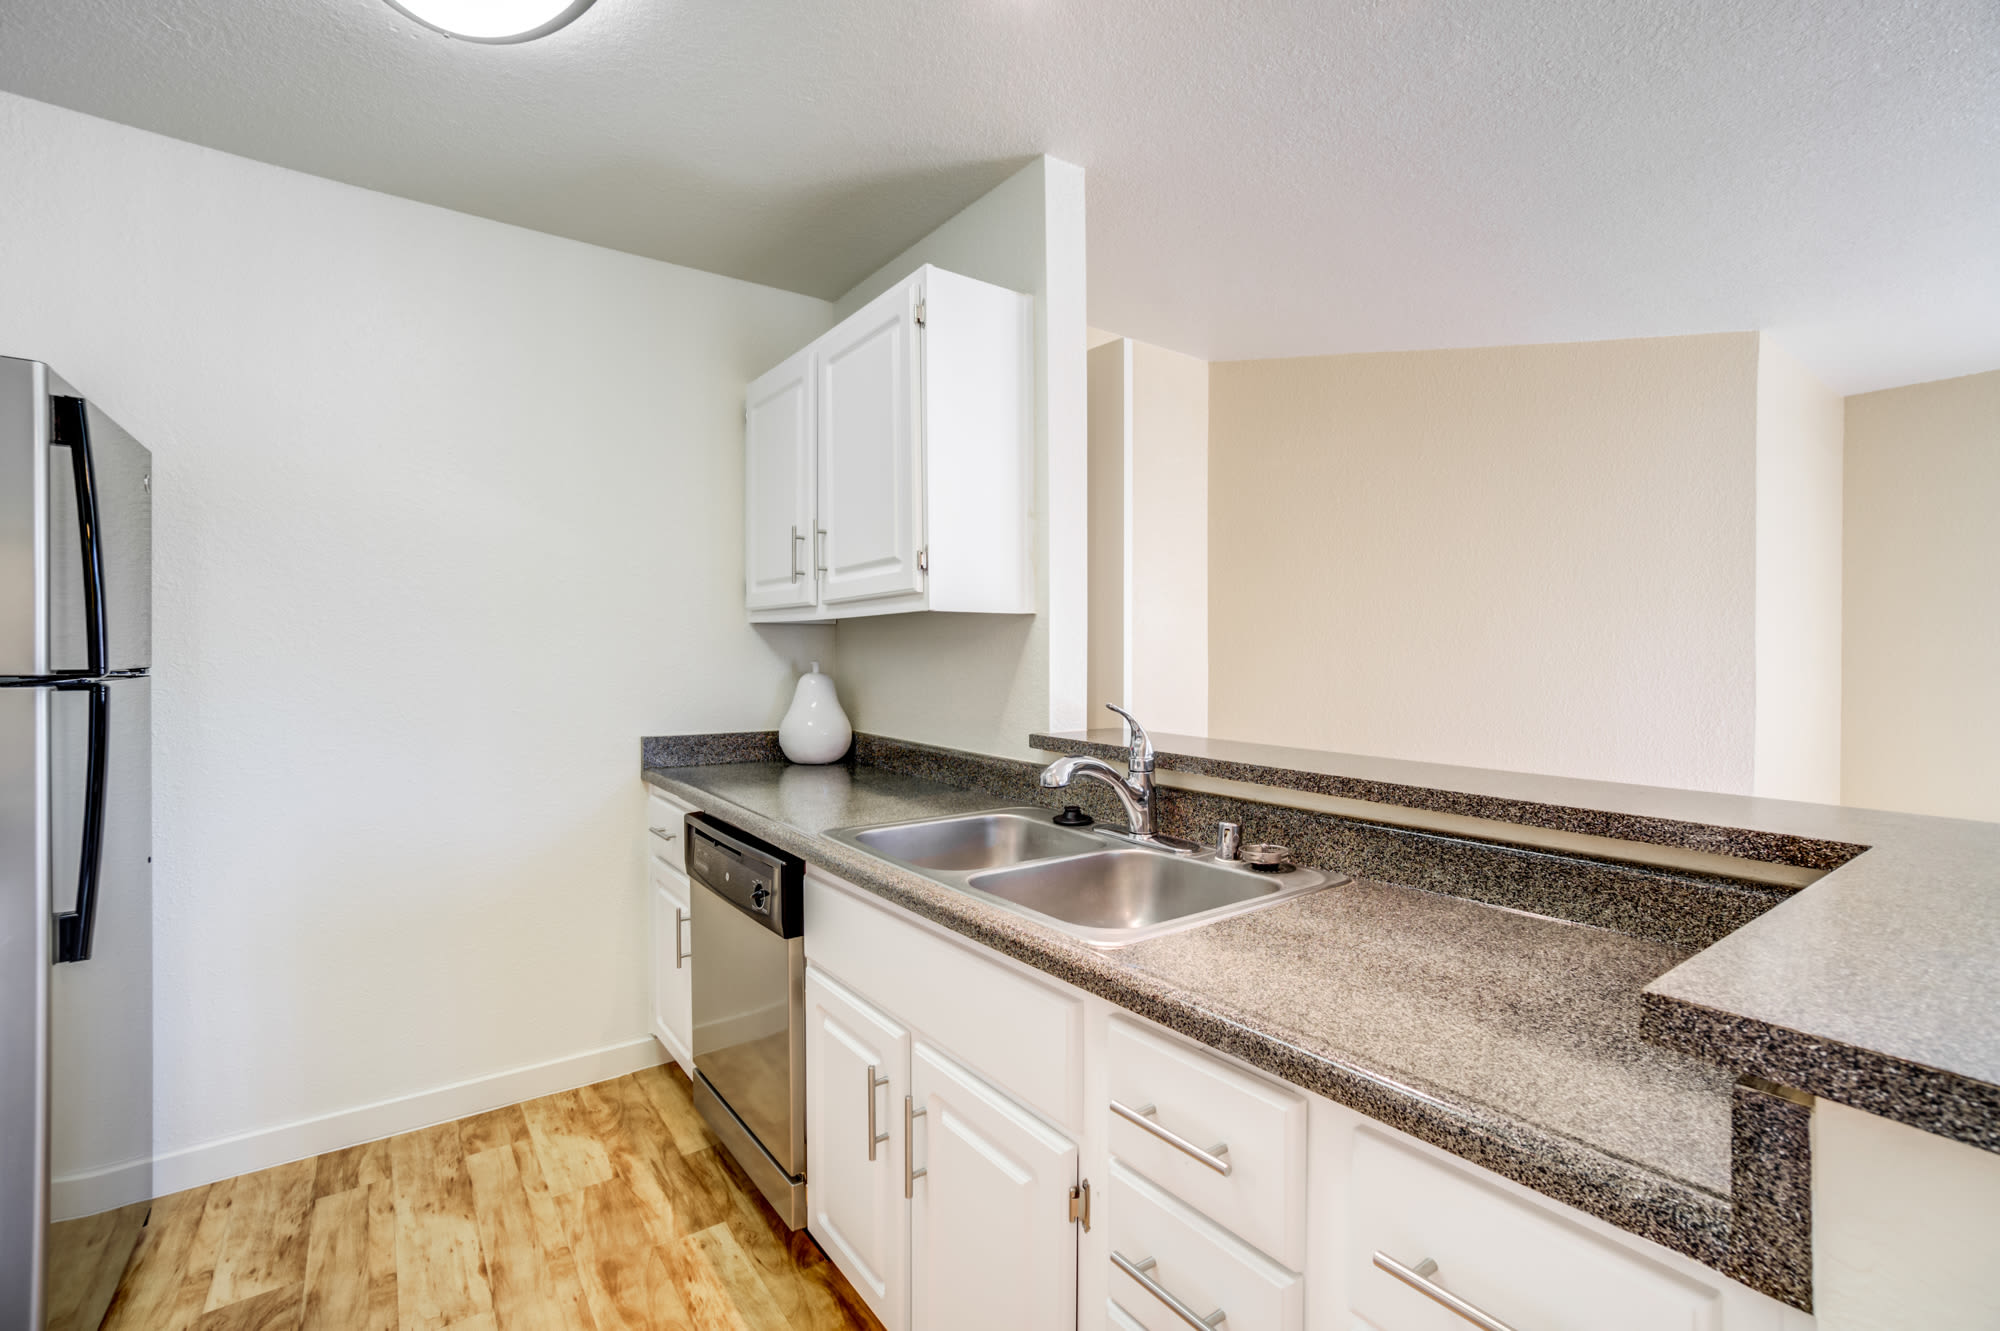 Fully Equipped Kitchen at Sommerset Apartments in Vacaville, CA